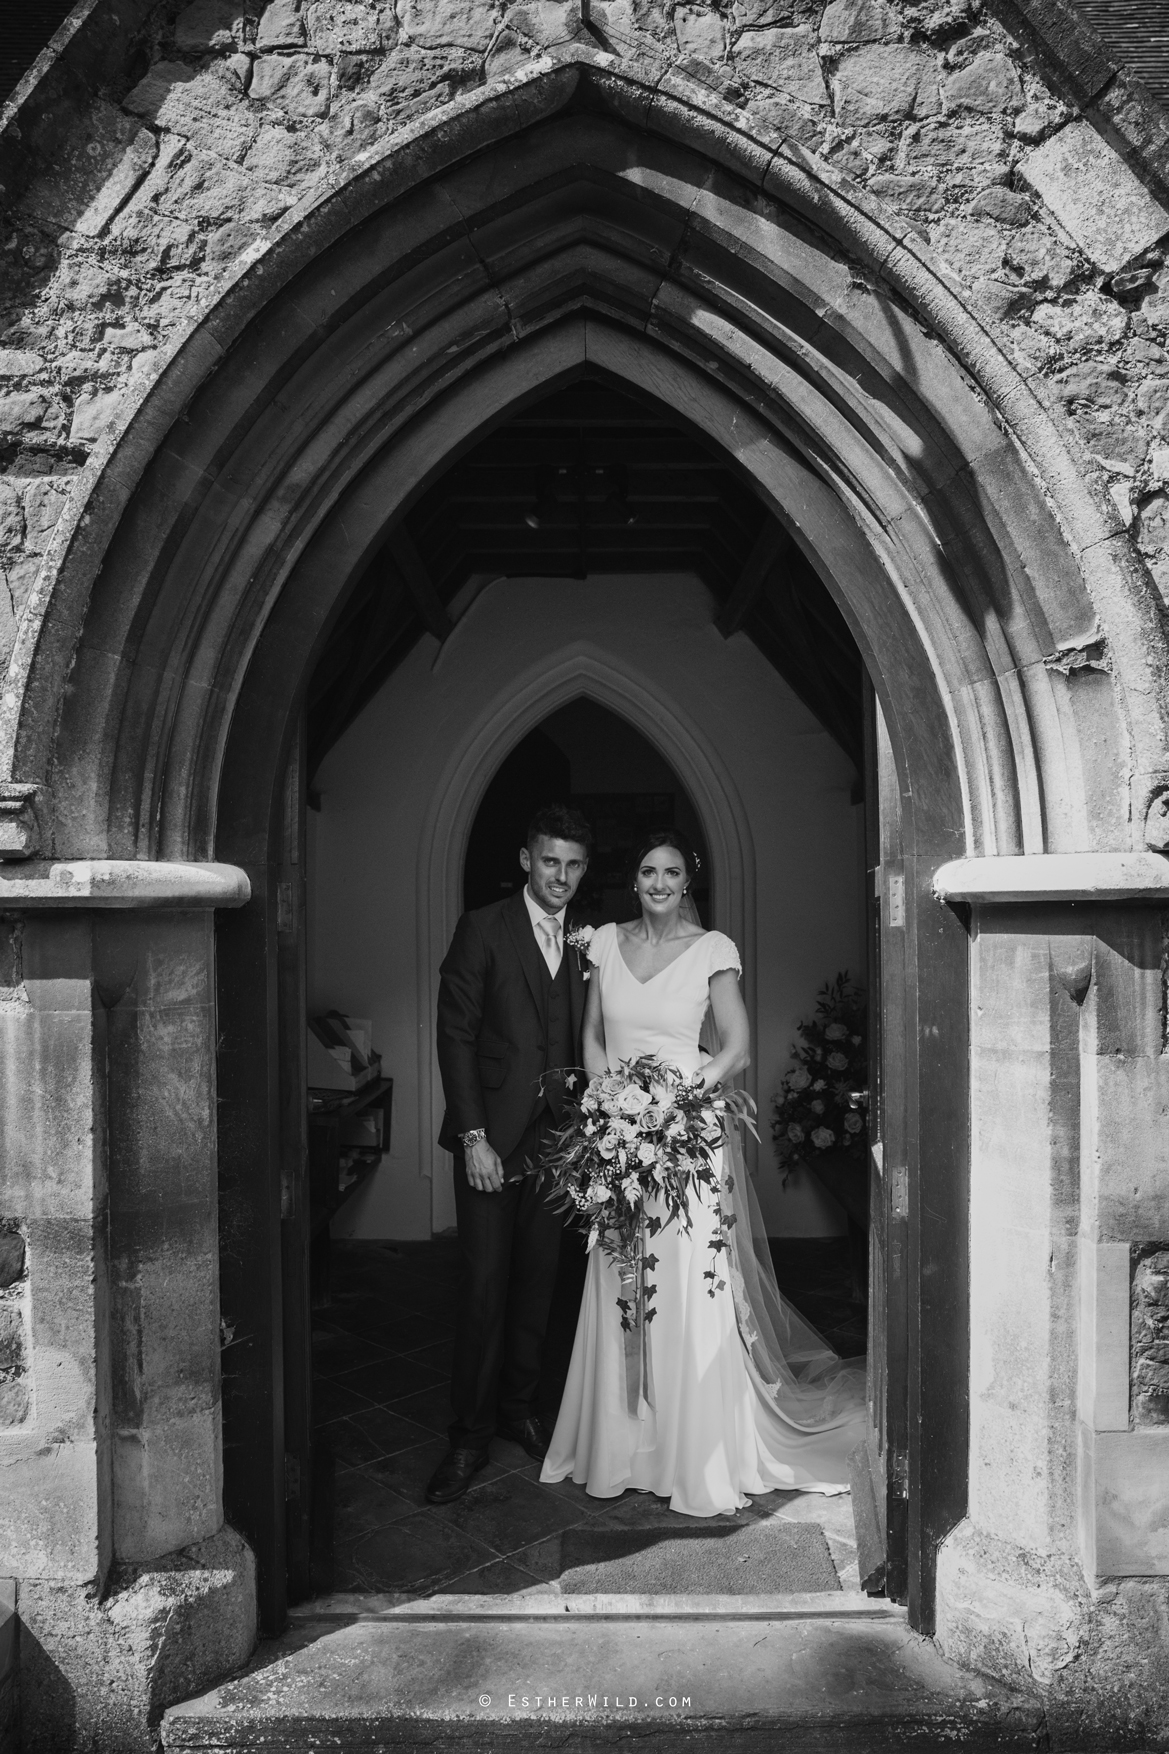 Wootton_Wedding_Copyright_Esther_Wild_Photographer_IMG_1465-1.jpg